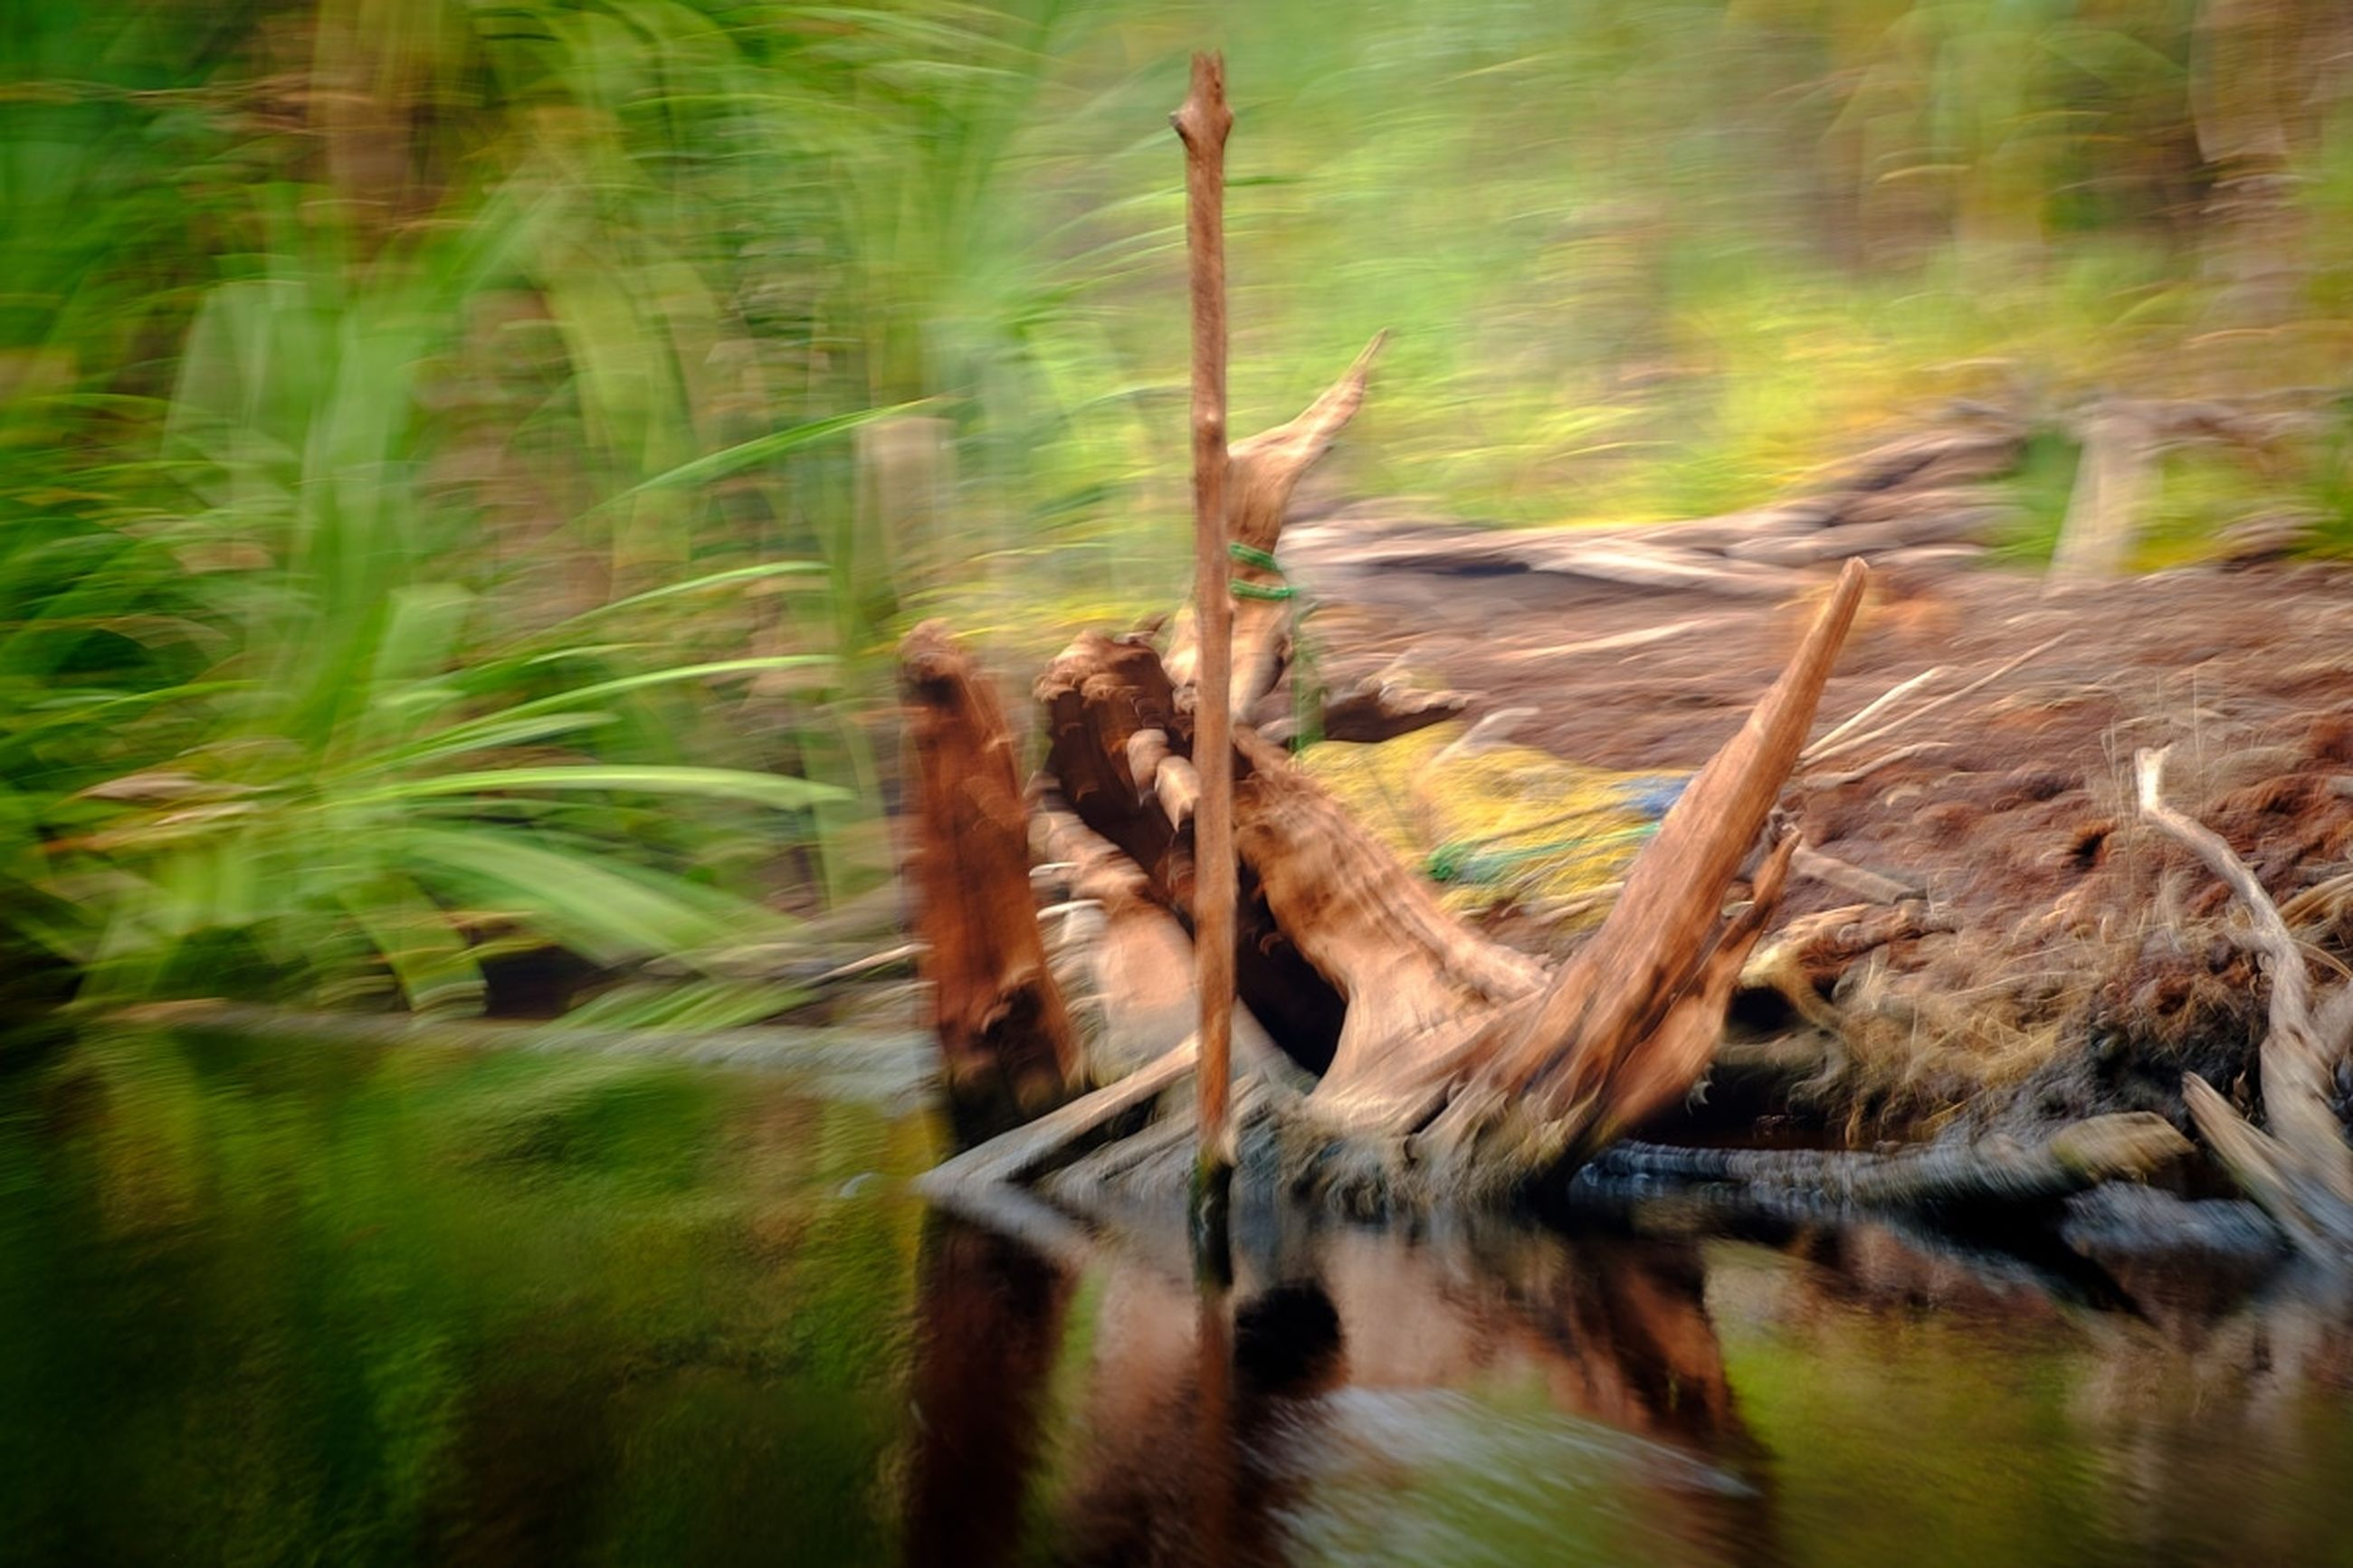 plant, one animal, blurred motion, nature, no people, vertebrate, animal wildlife, motion, animal, green color, land, grass, animals in the wild, animal themes, day, growth, water, field, speed, outdoors